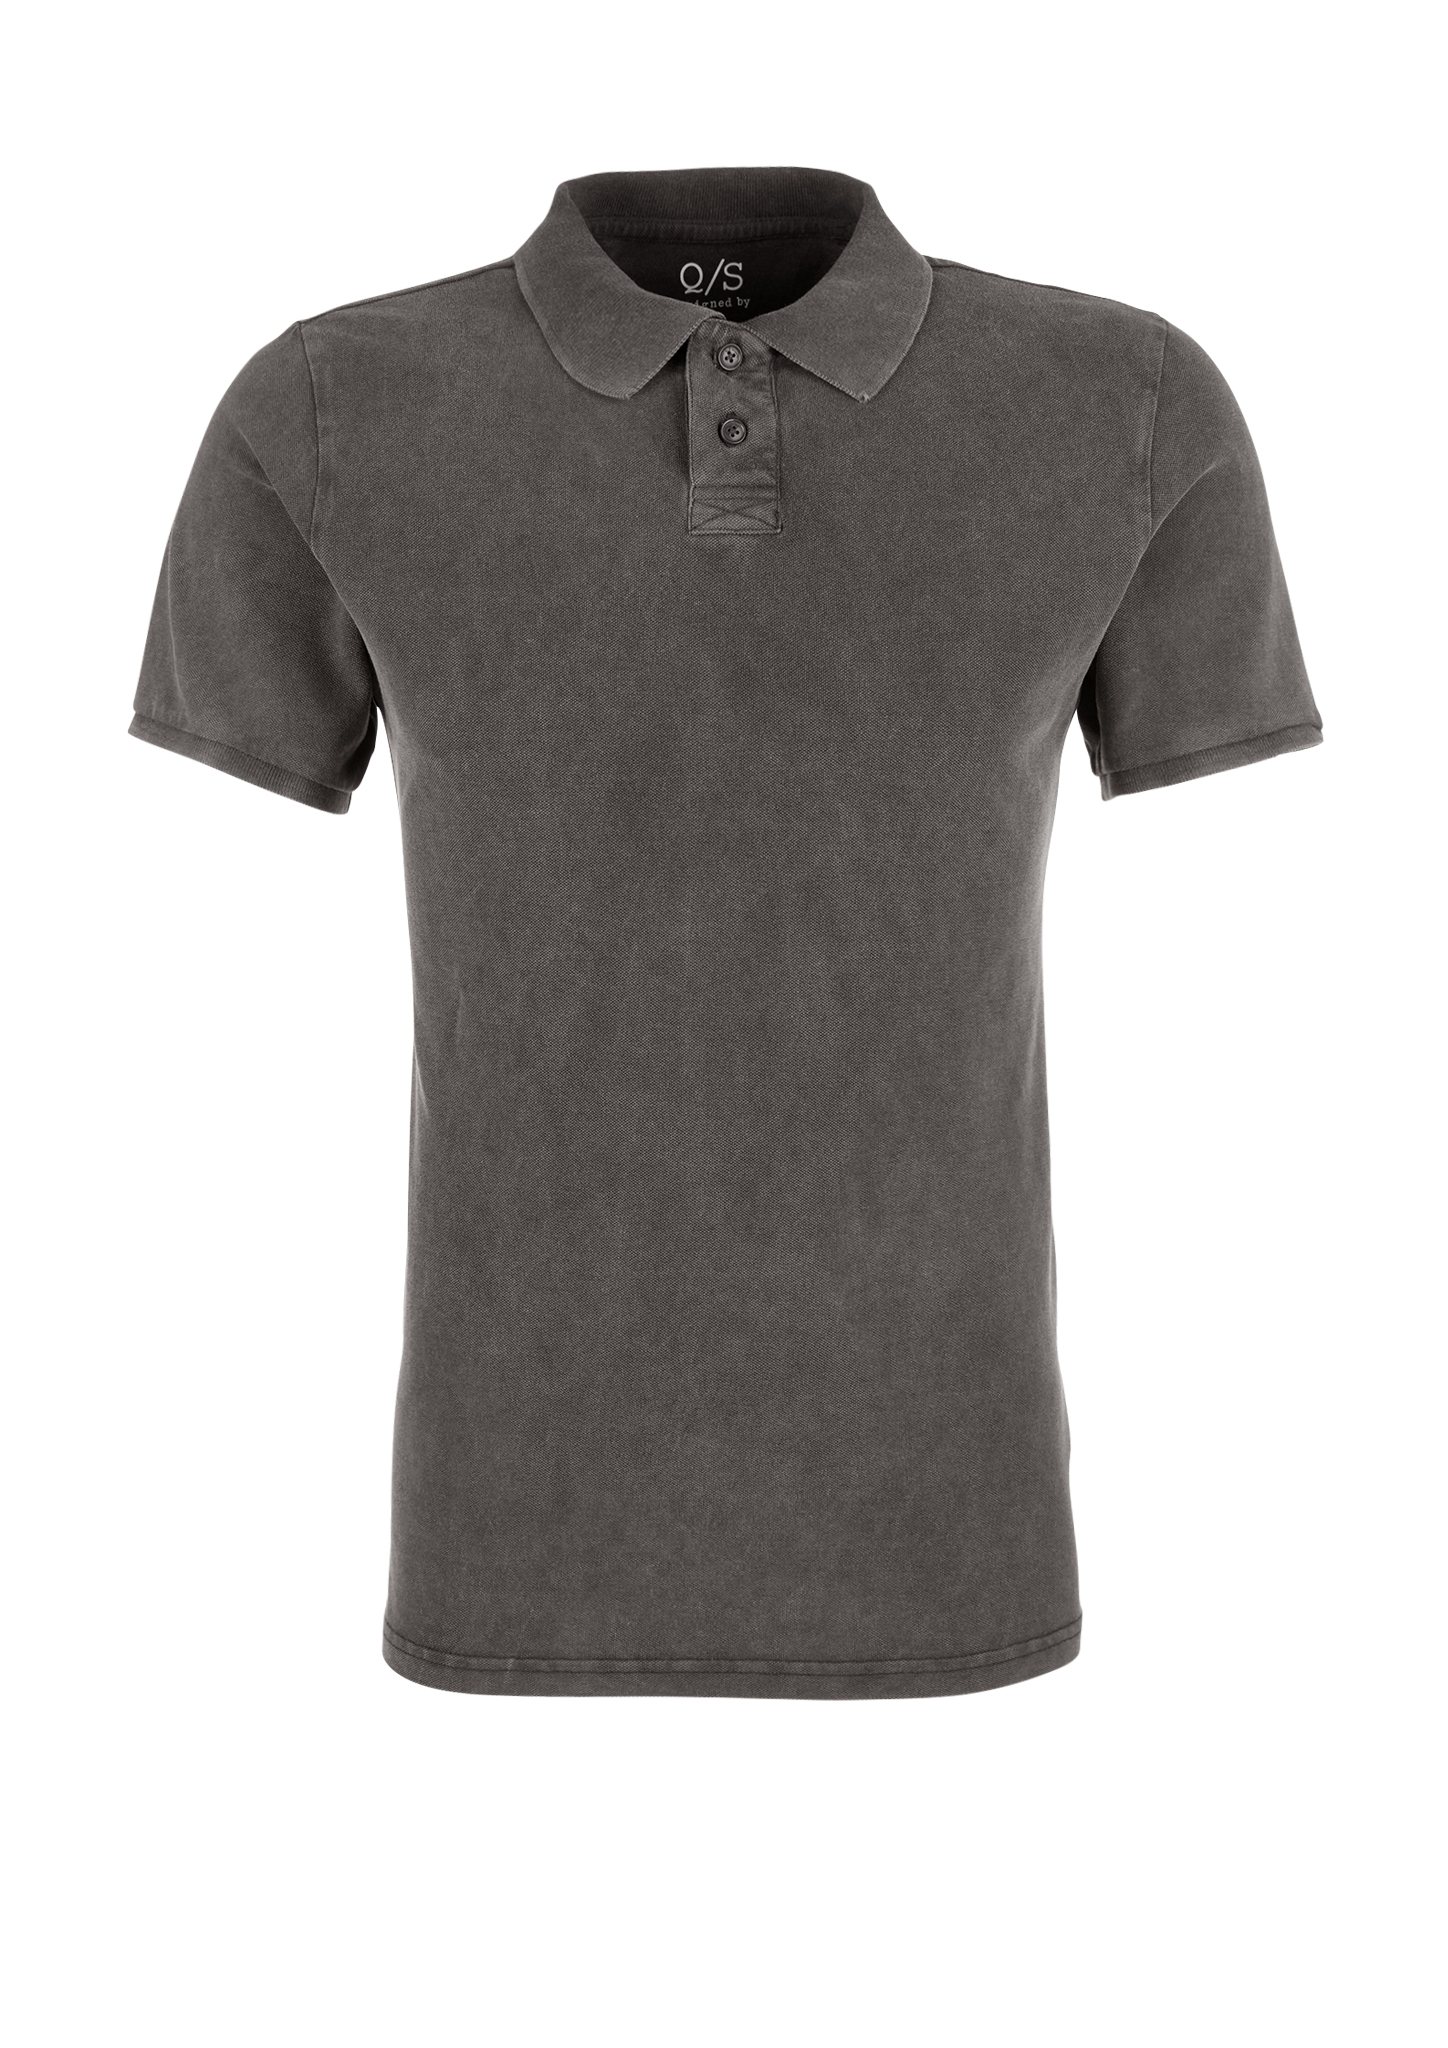 Poloshirt | Bekleidung > Polo Shirts | Q/S designed by